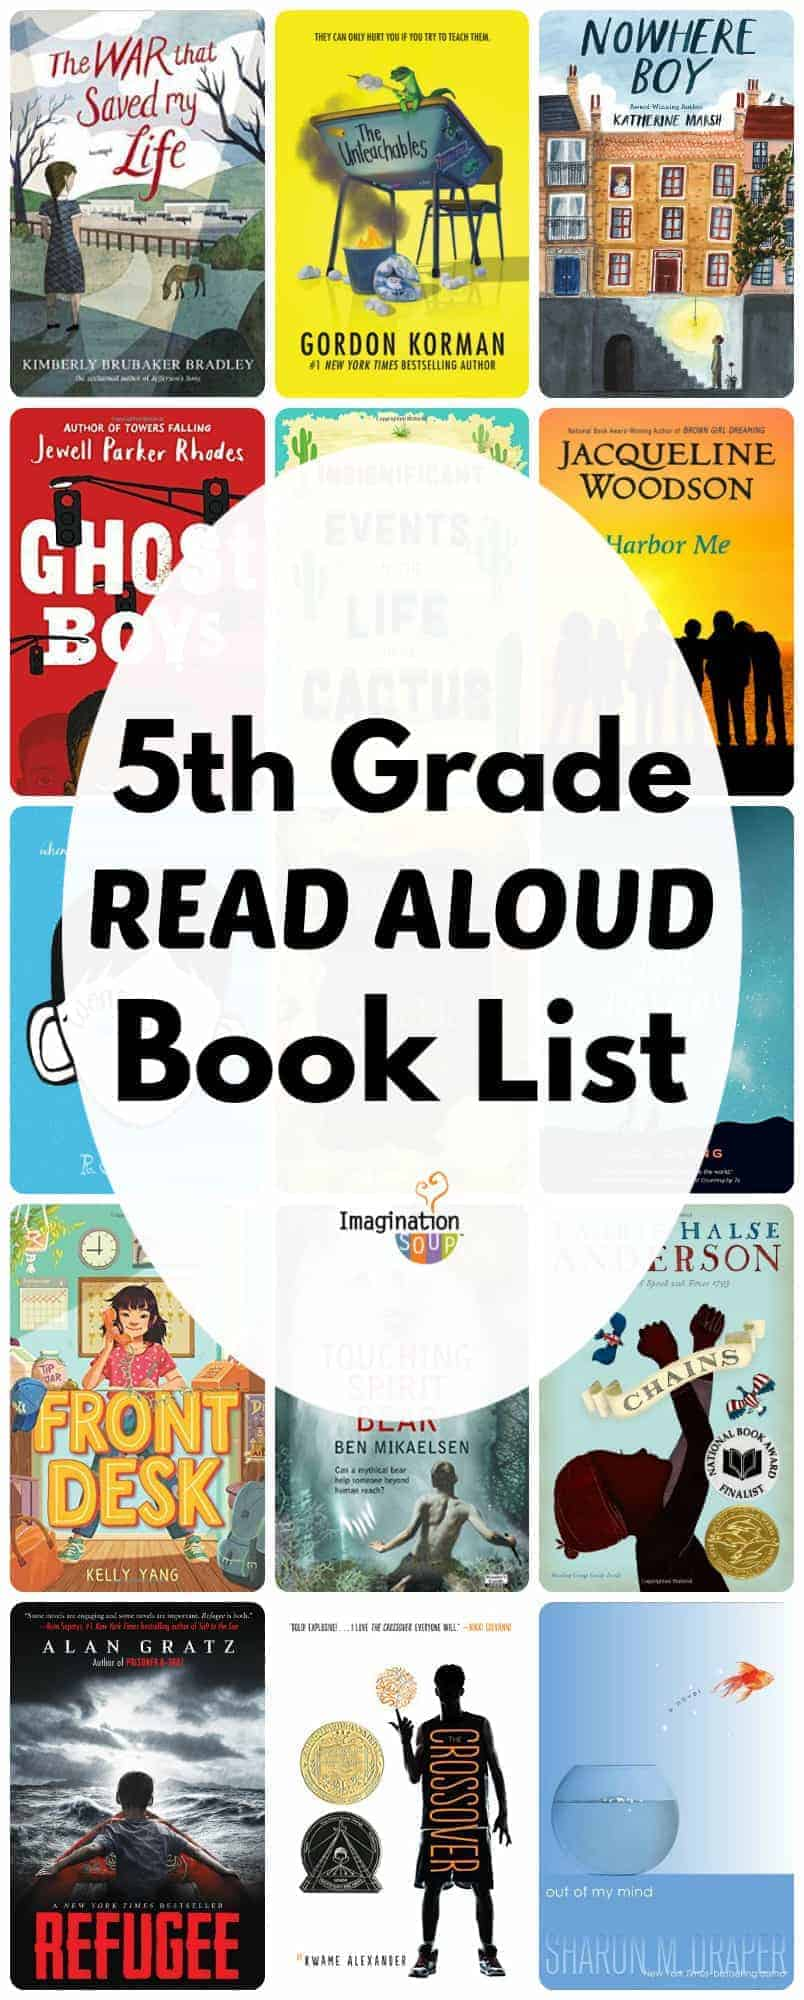 5th grade read aloud book list